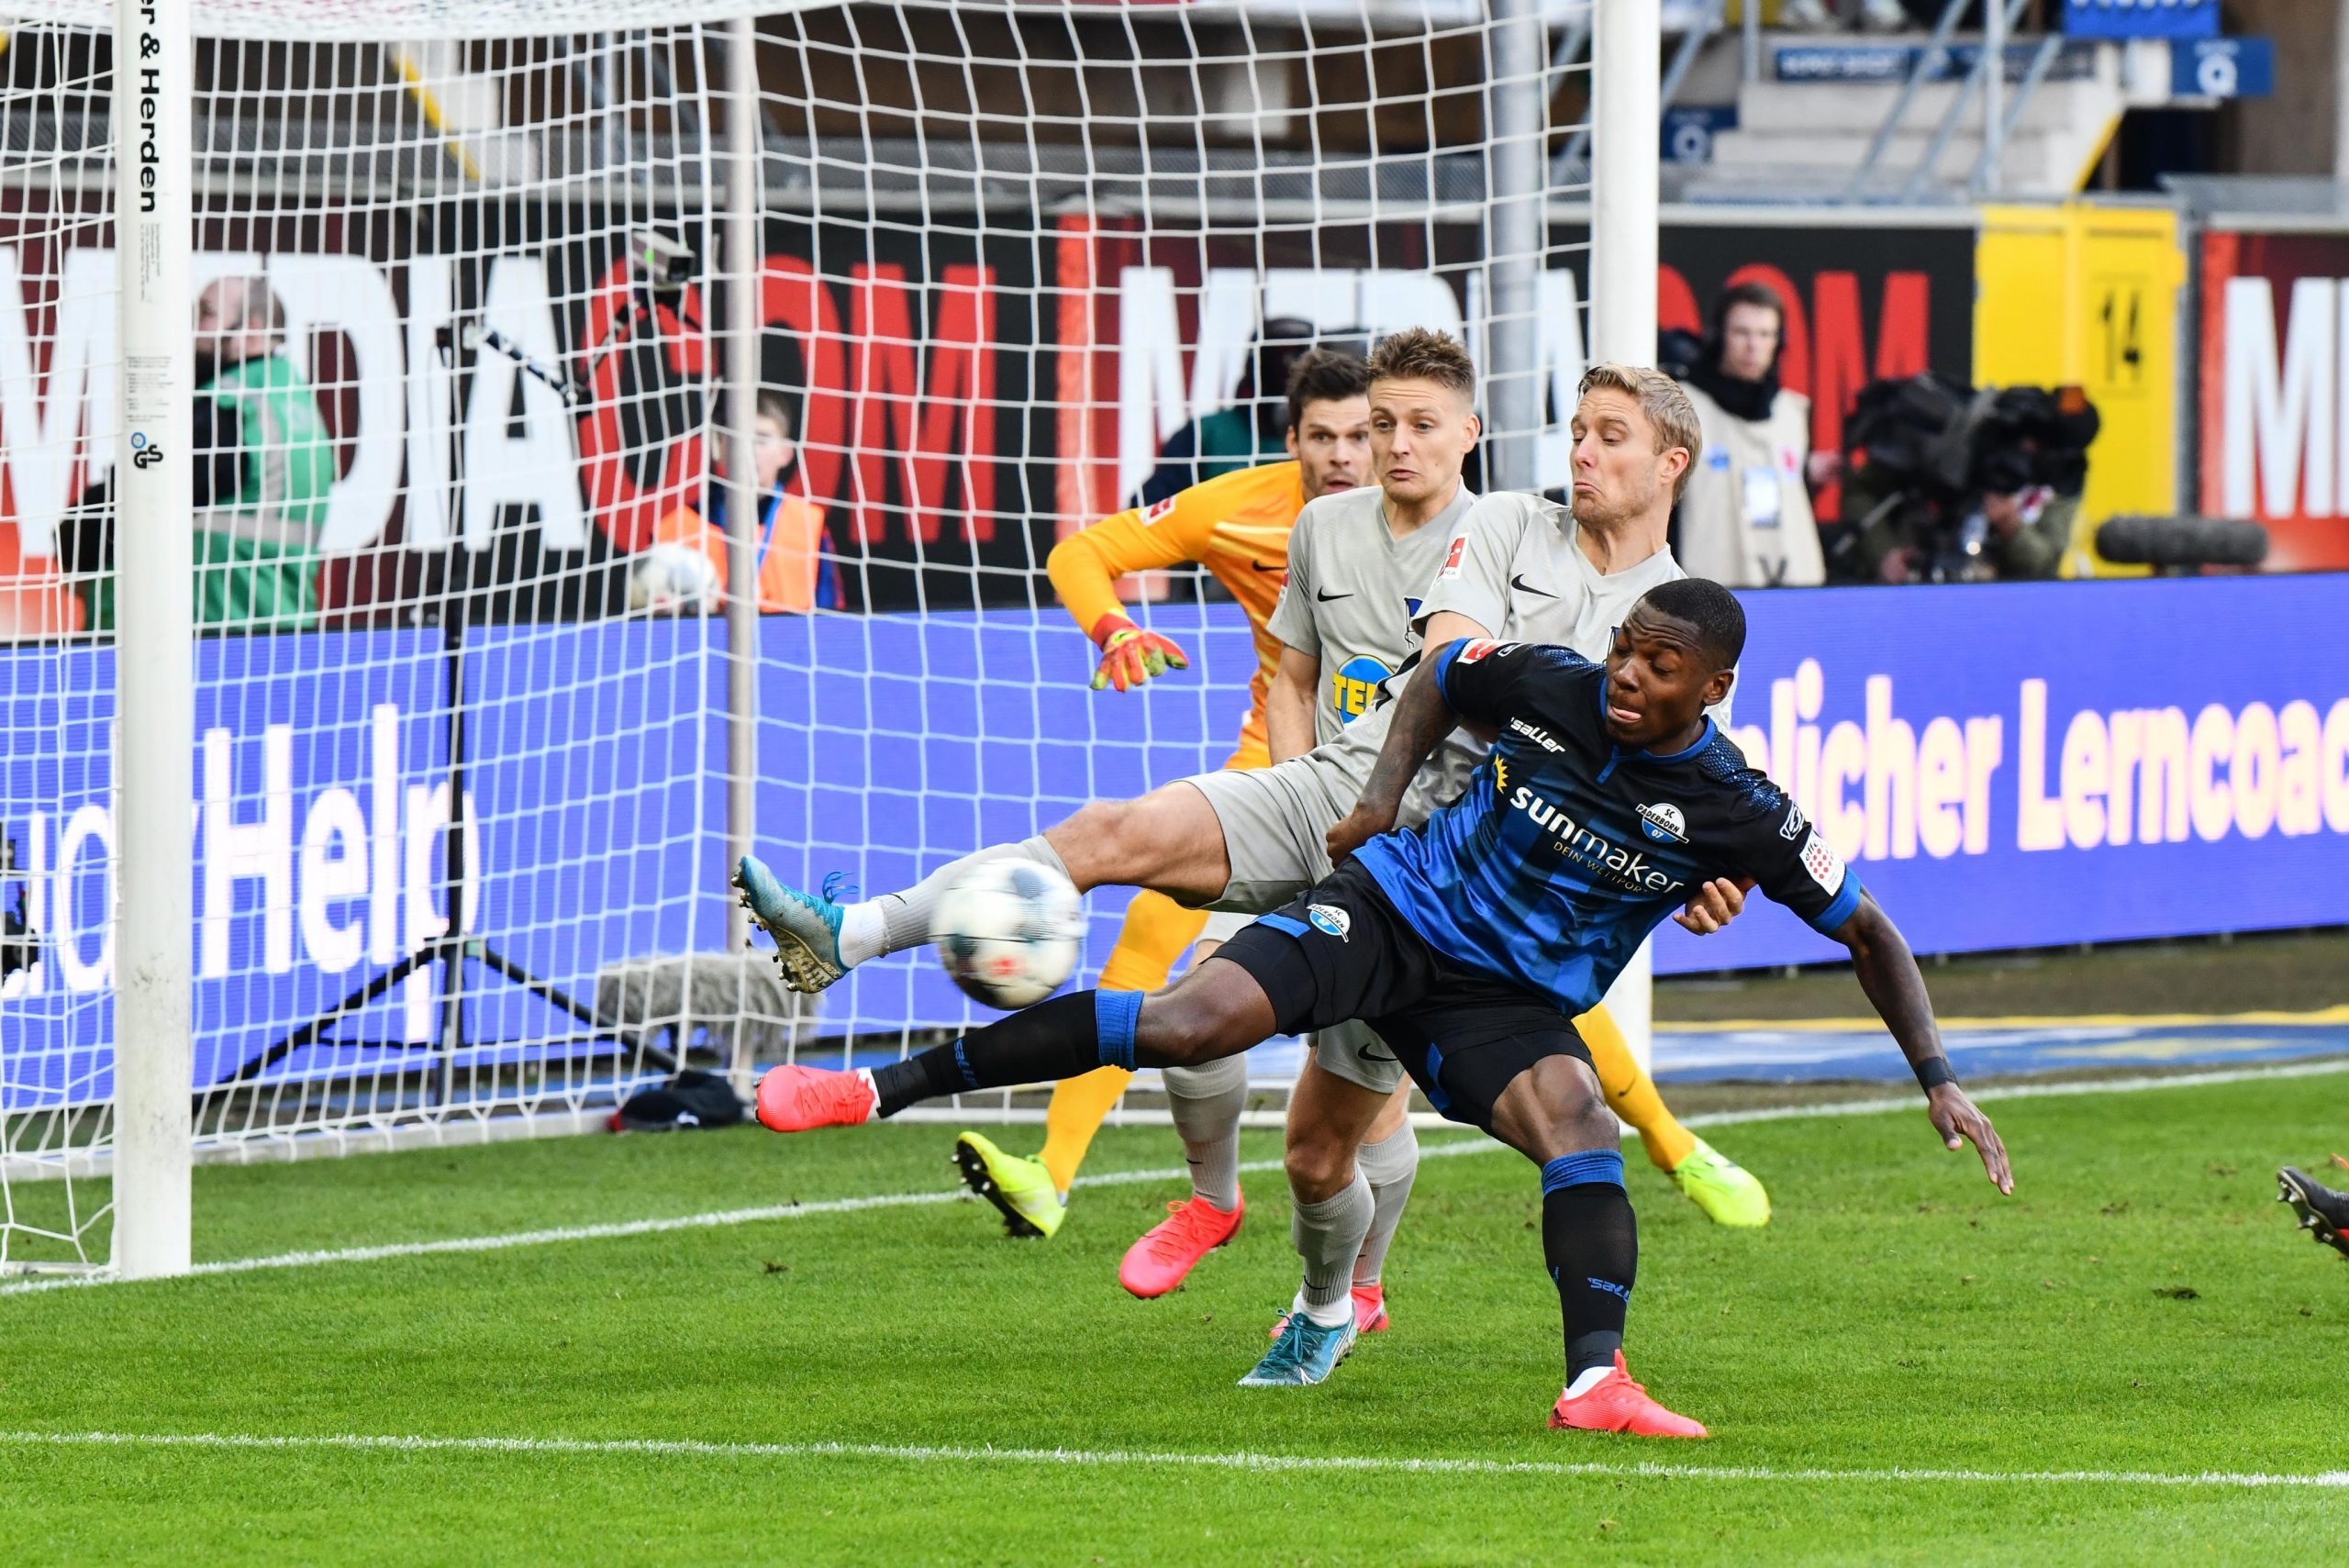 Bundesliga: Collins Scores Own Goal In Paderborn Home Loss To Hertha Berlin